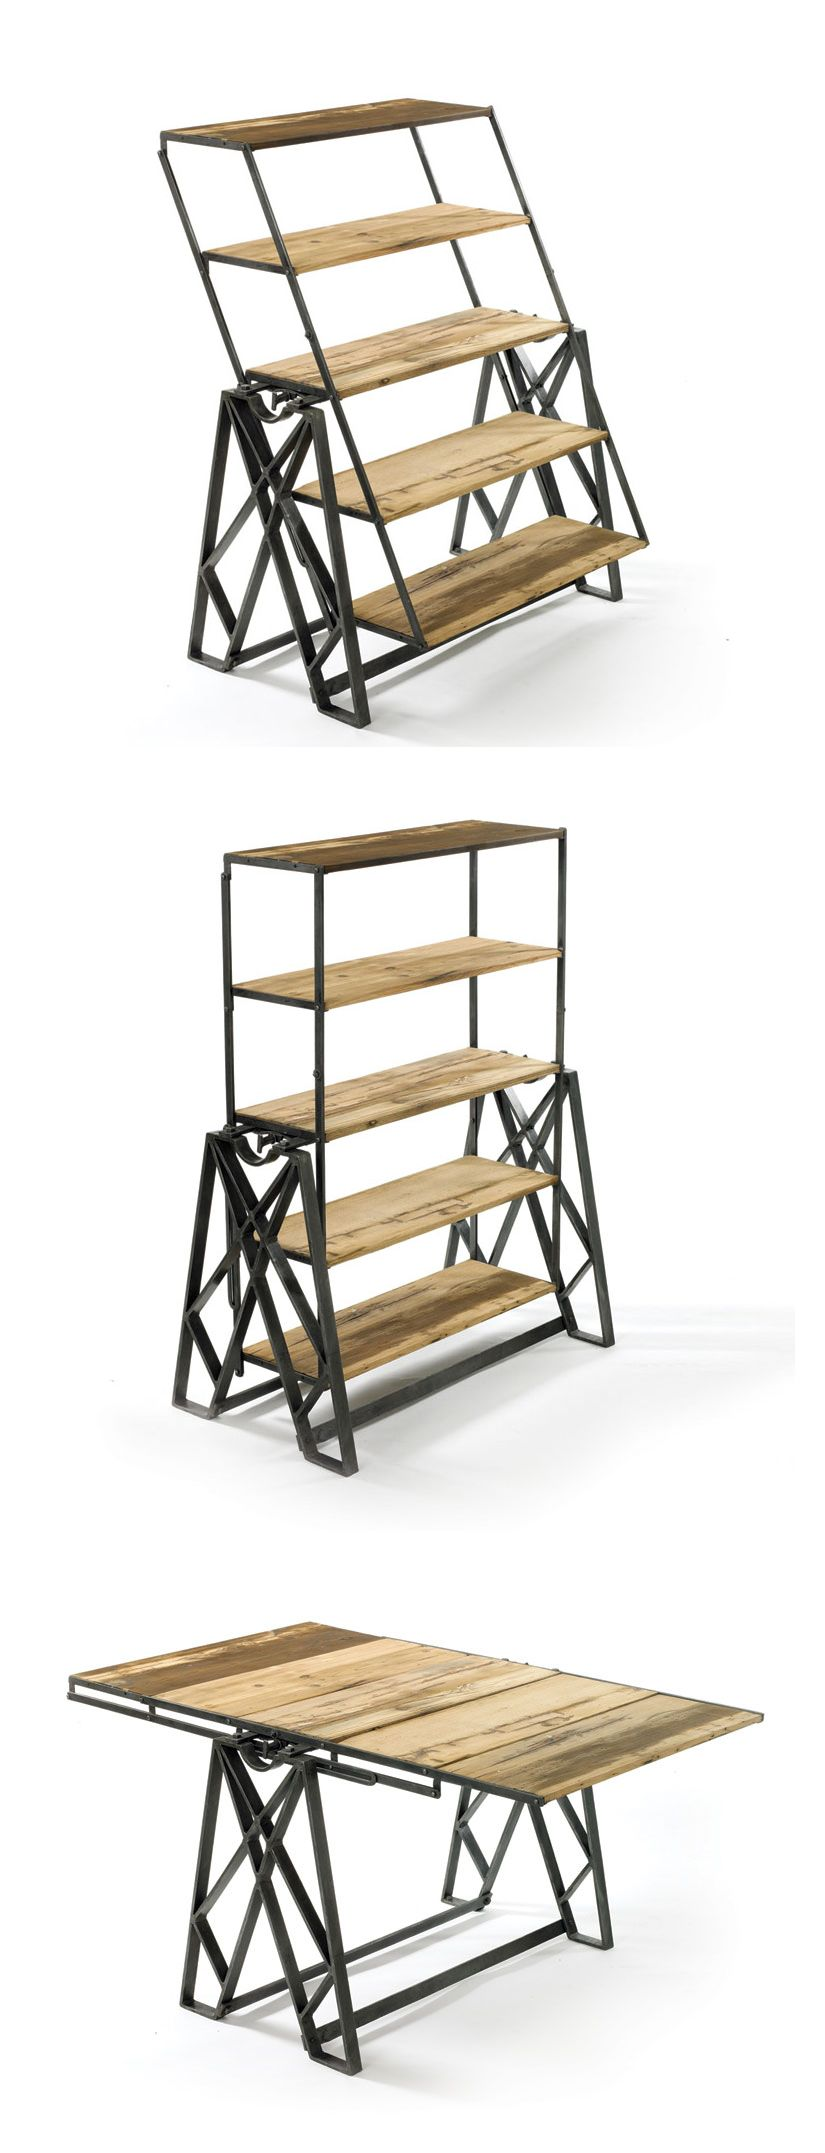 Shelves That Convert Into A Table Kast Idee Stellingkast